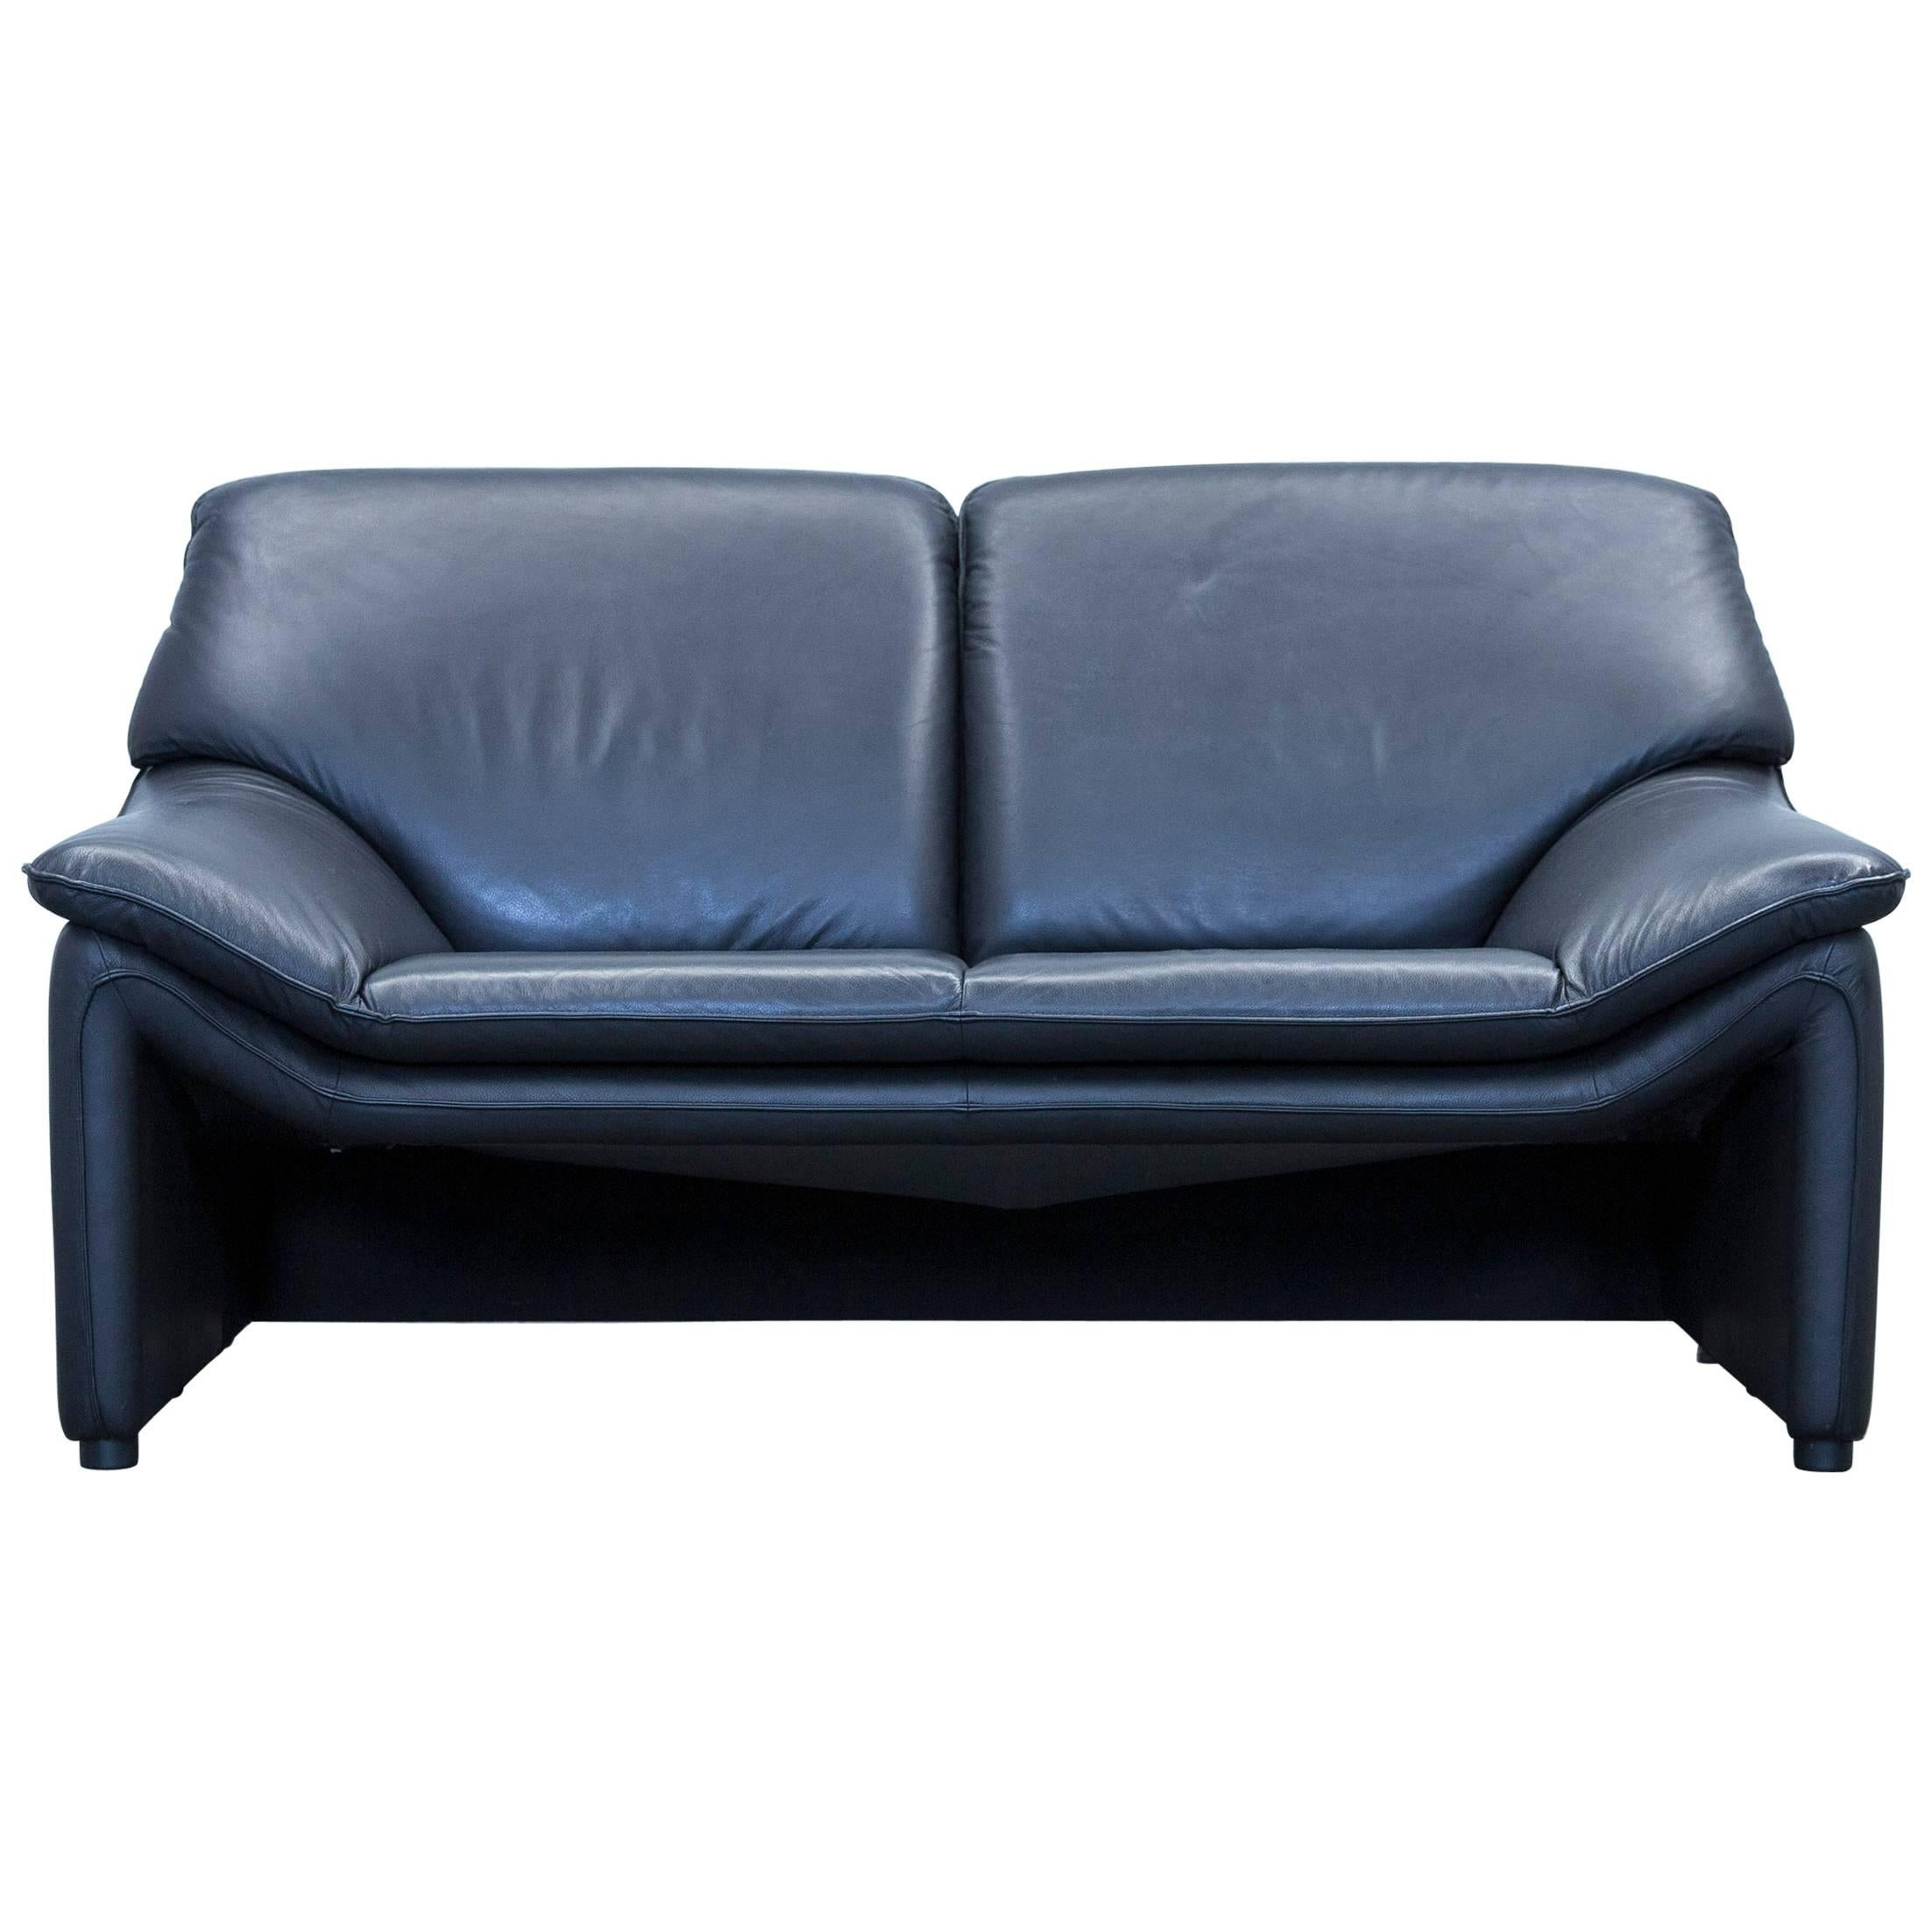 Delightful Laauser Atlanta Designer Sofa Leather Black Two Seat Couch For Sale